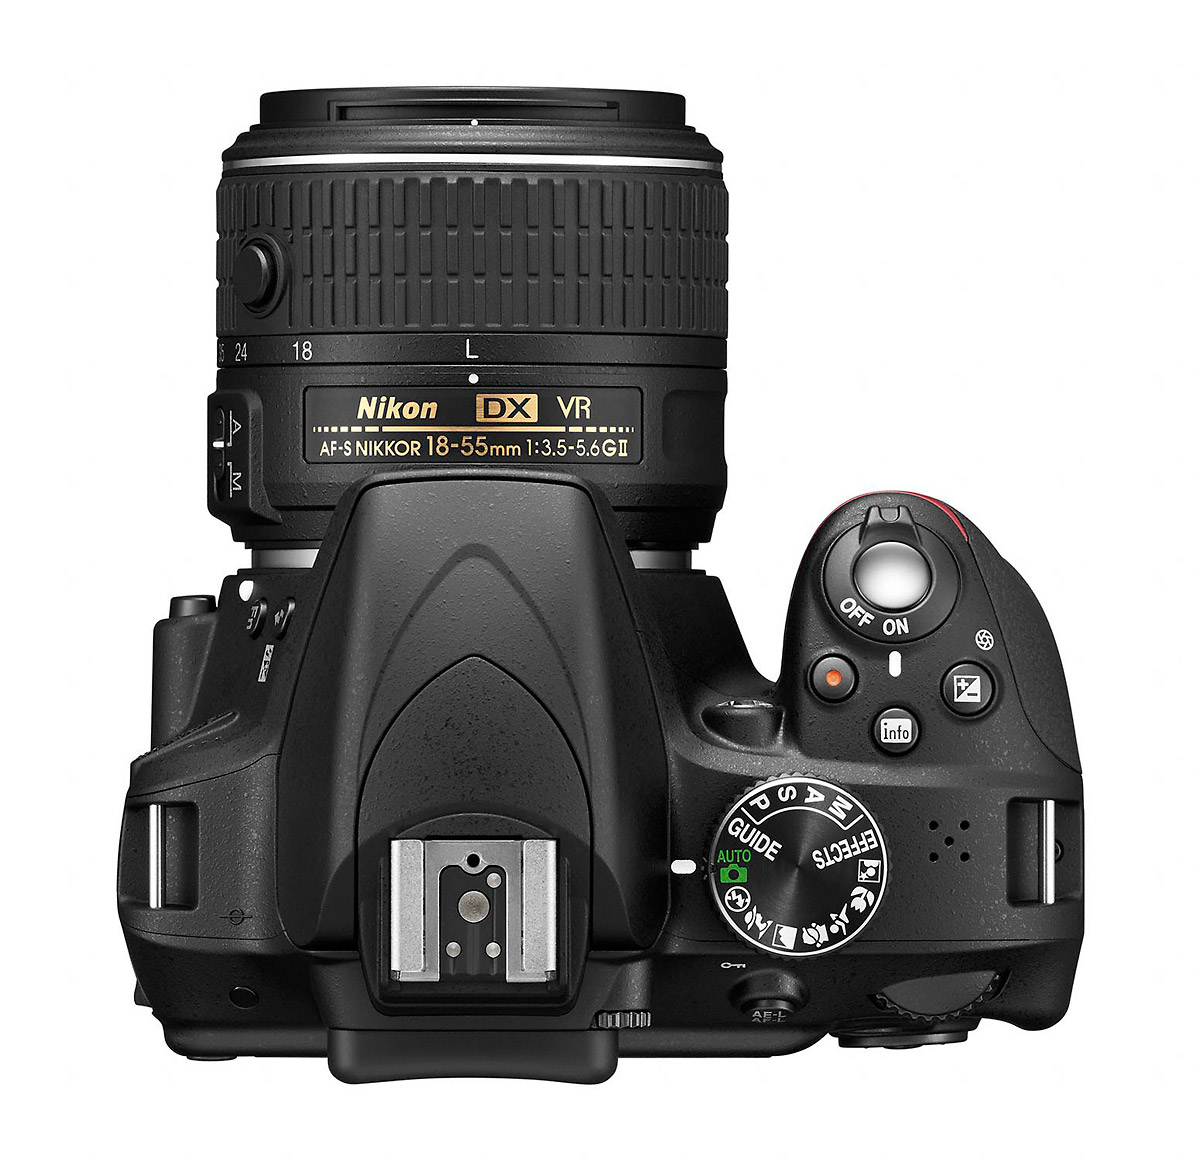 The Nikon D3300 Offers AA-Free Sensor In An Affordable